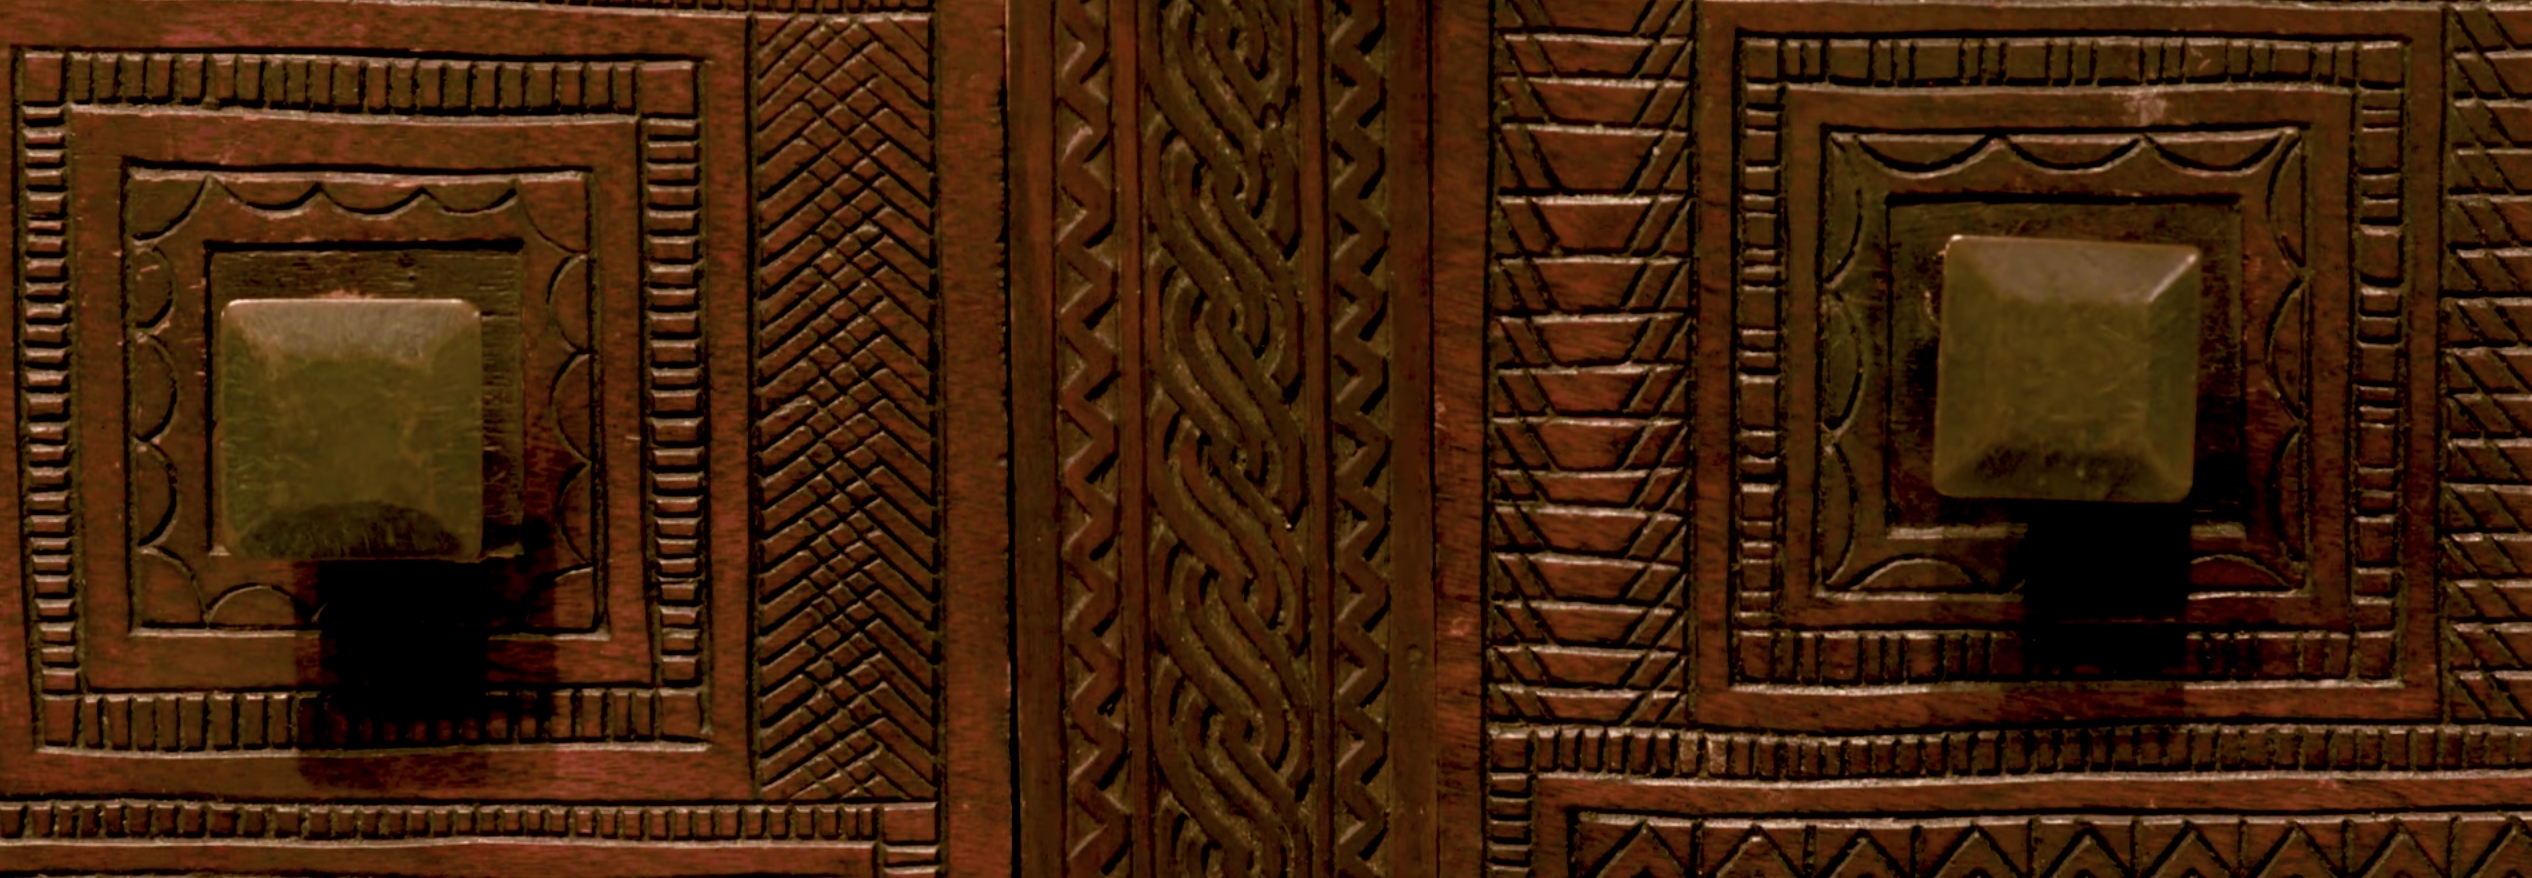 Detail of carved chest, showing two knobs